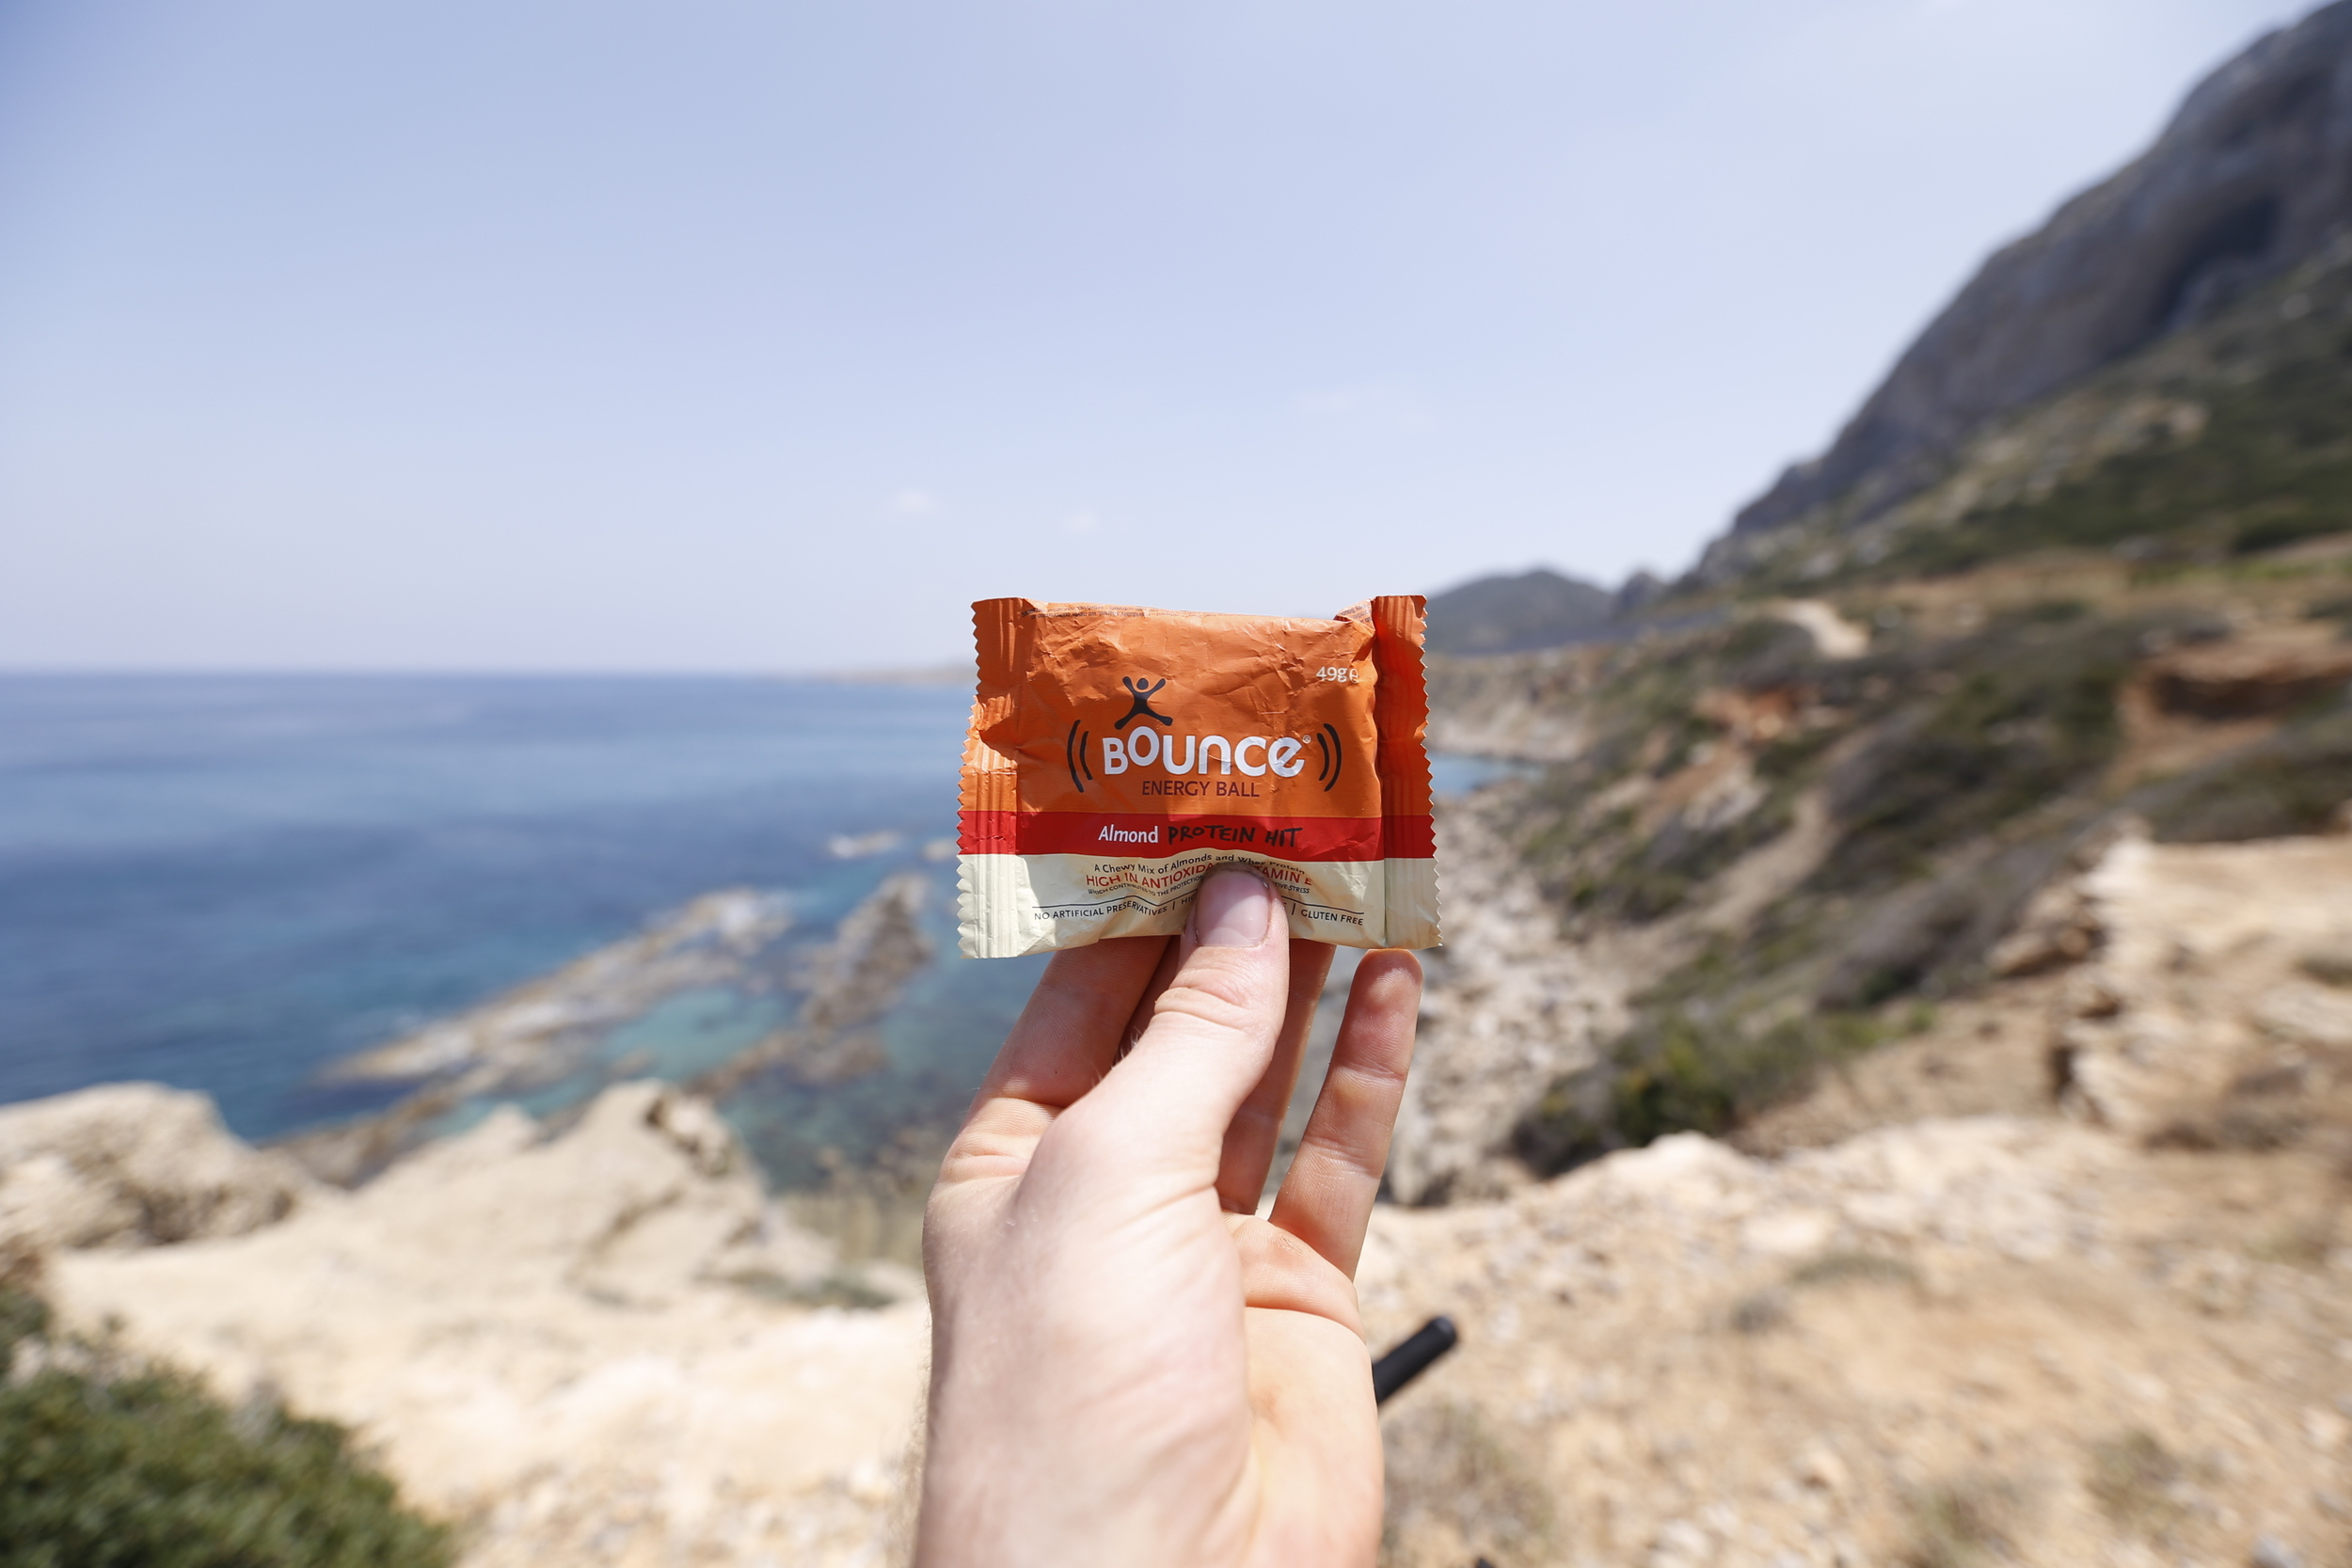 bounce balls, foodie, bounce, bounce food, bicycle touring apocalypse, foodie, lunch, food blog, food photography, eeeats, travel, travel blog, travel journalist, jack macgowan, bikepacking, bikepacking blog, protein ball, protein foods